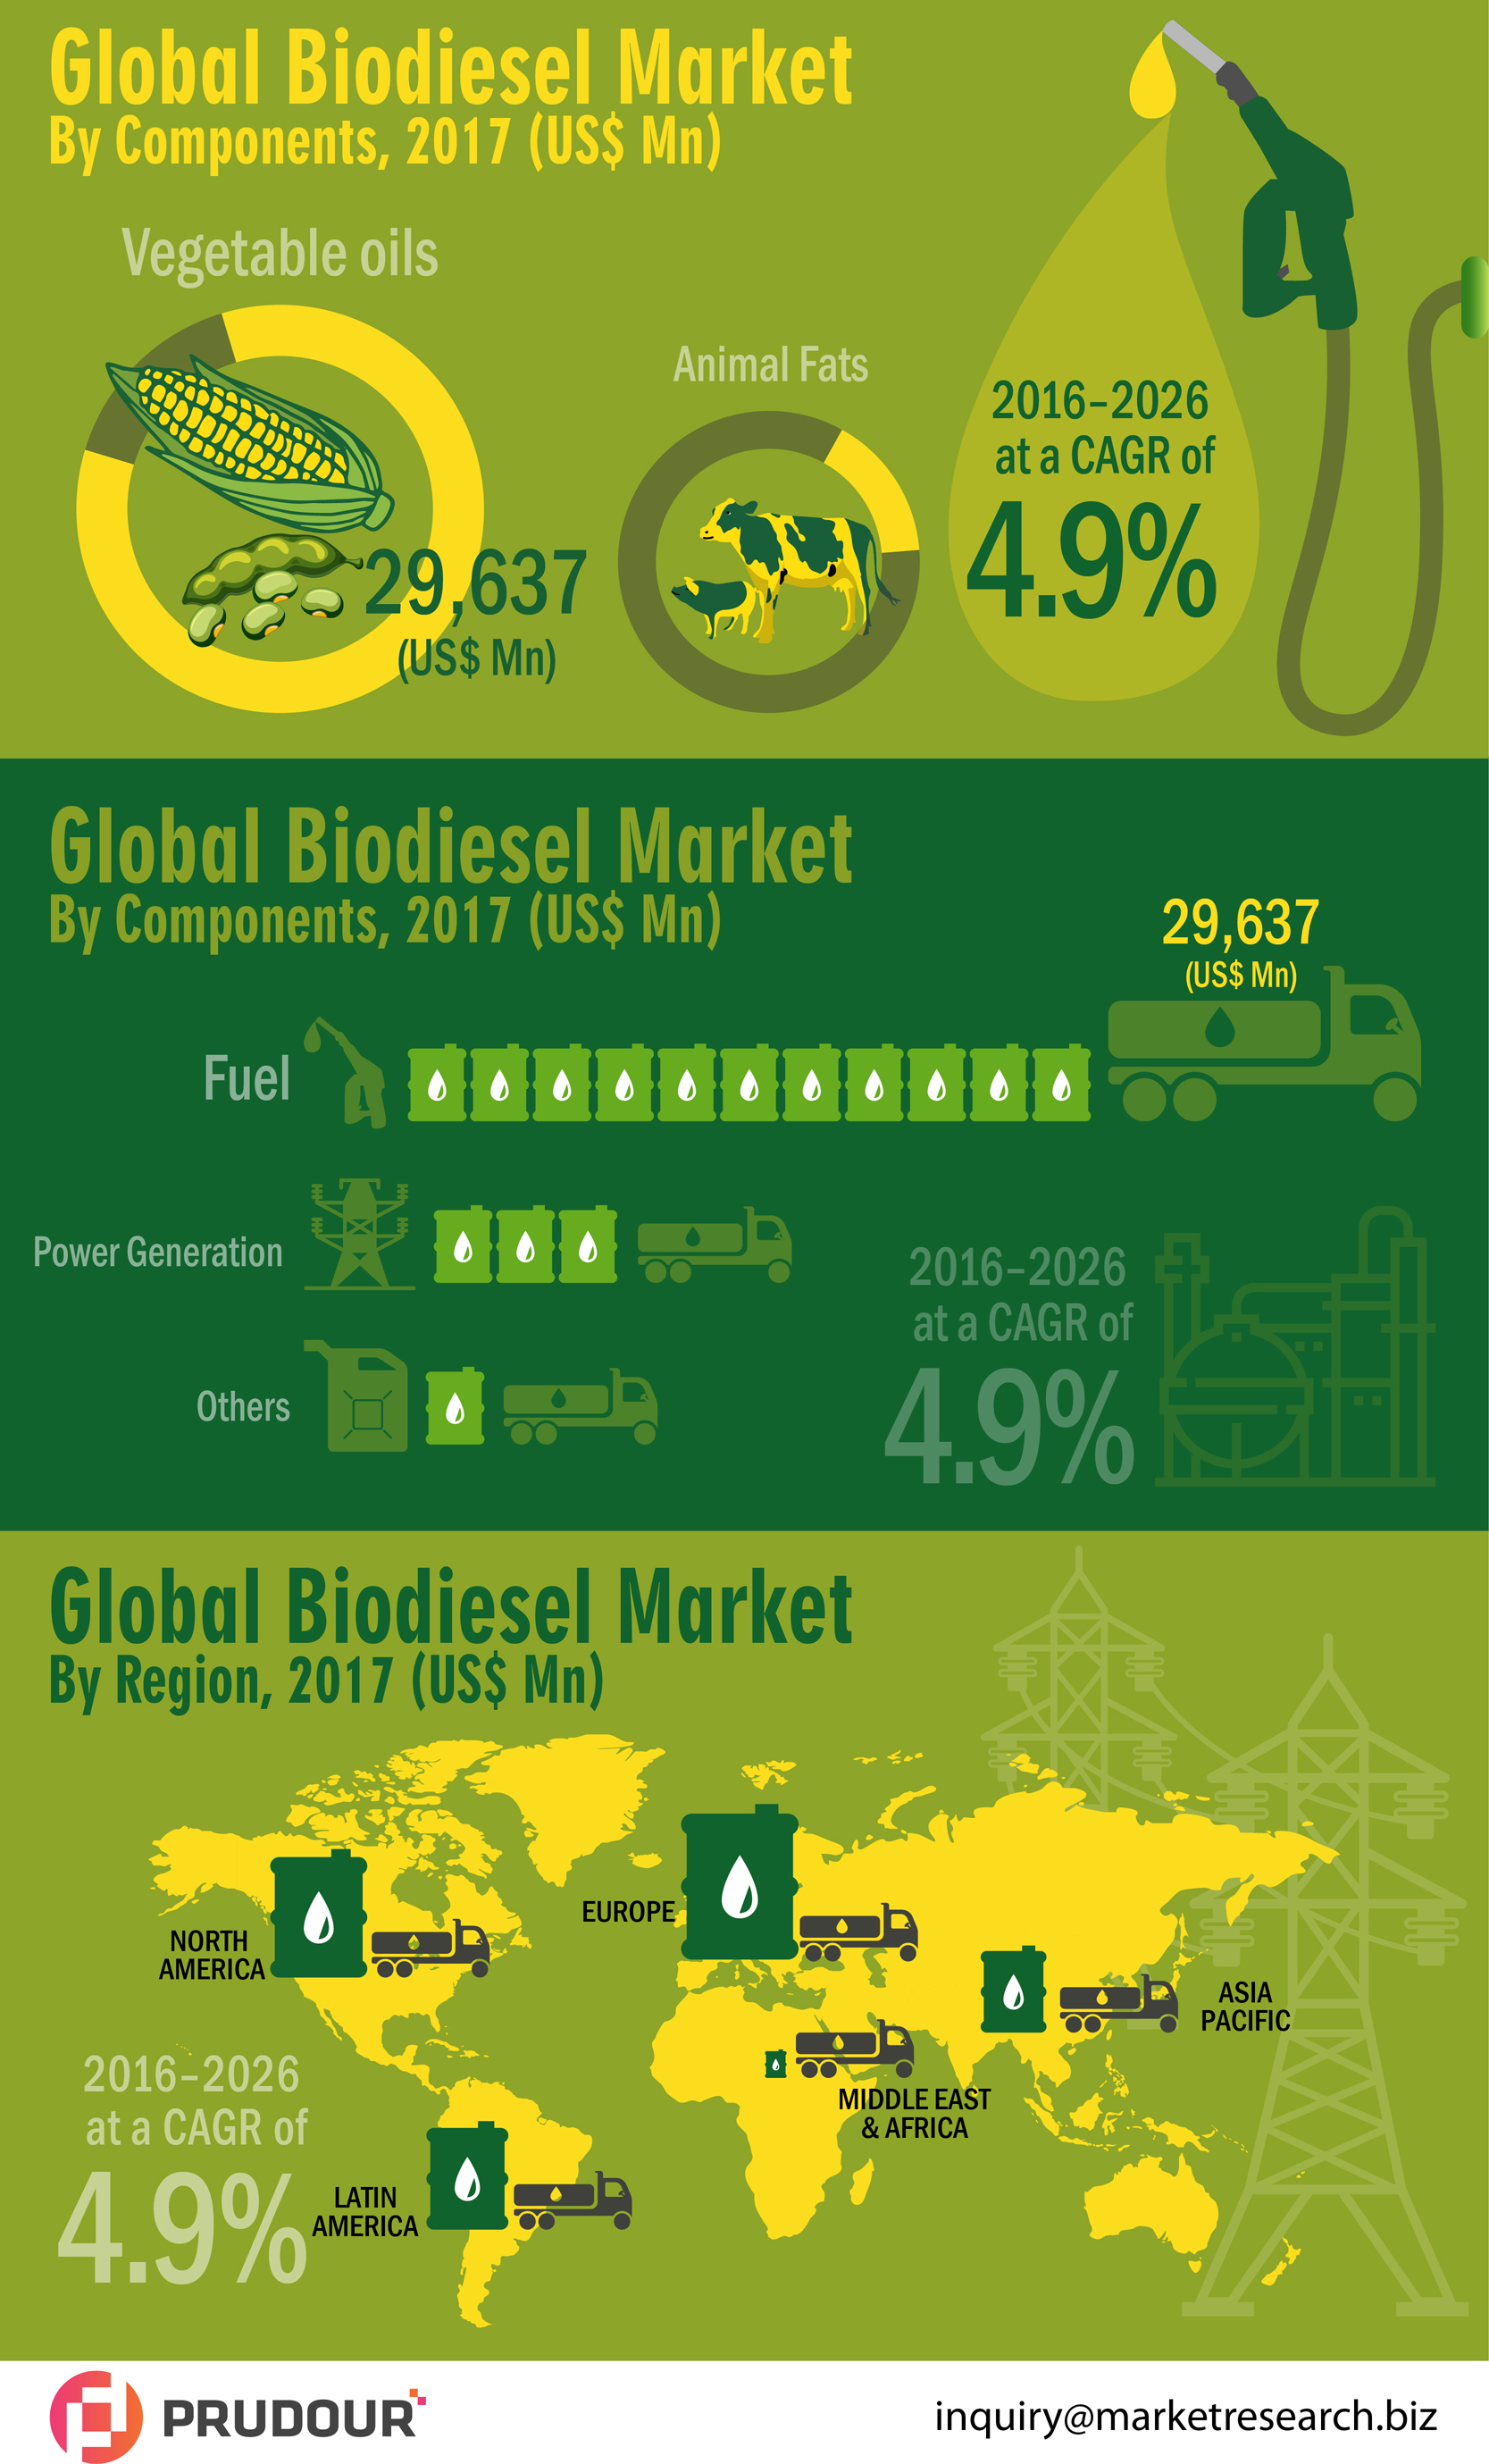 infographics-global-biodiesel-market-infographic-plaza